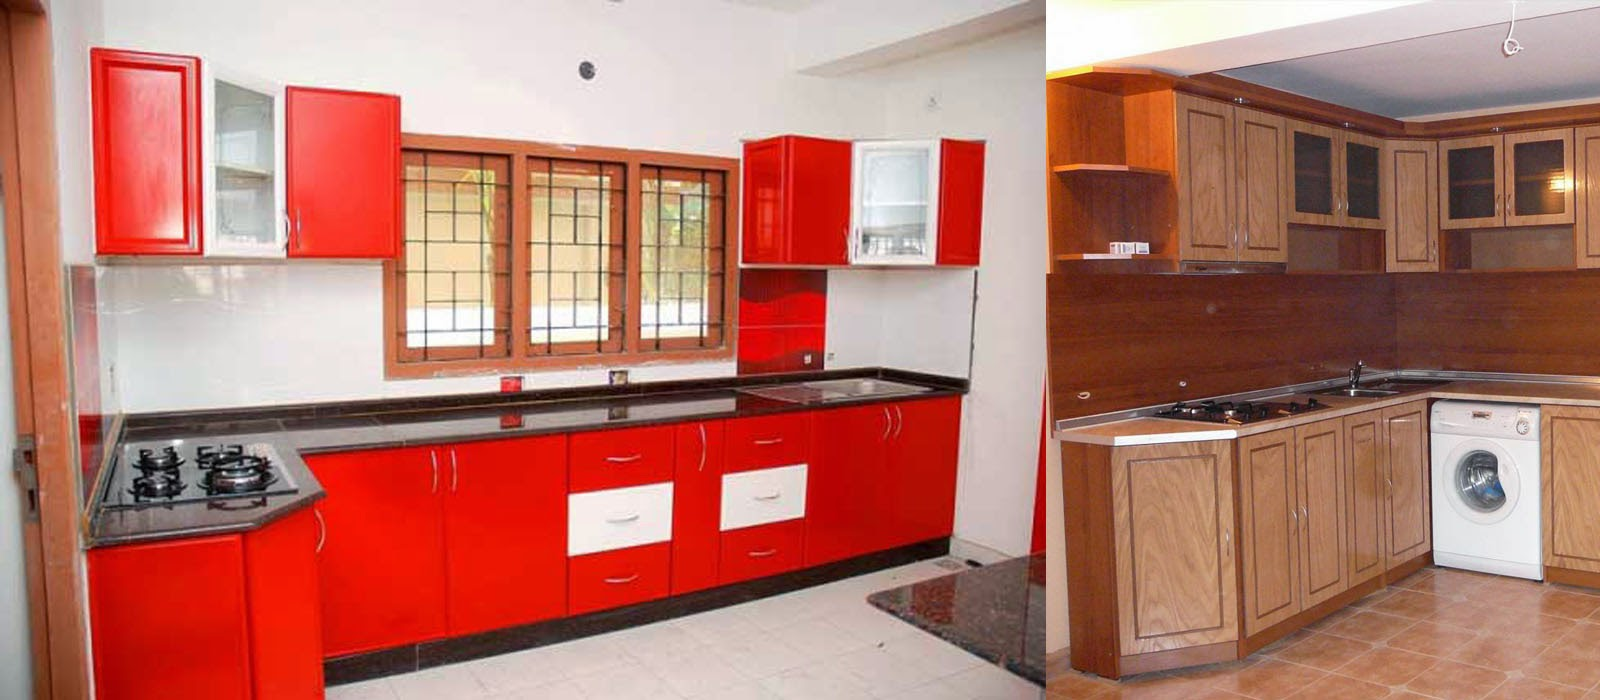 Aluminium fabrication kichen cabinets photos in kerala modeal joy studio design gallery best - Bathroom cabinets kerala ...